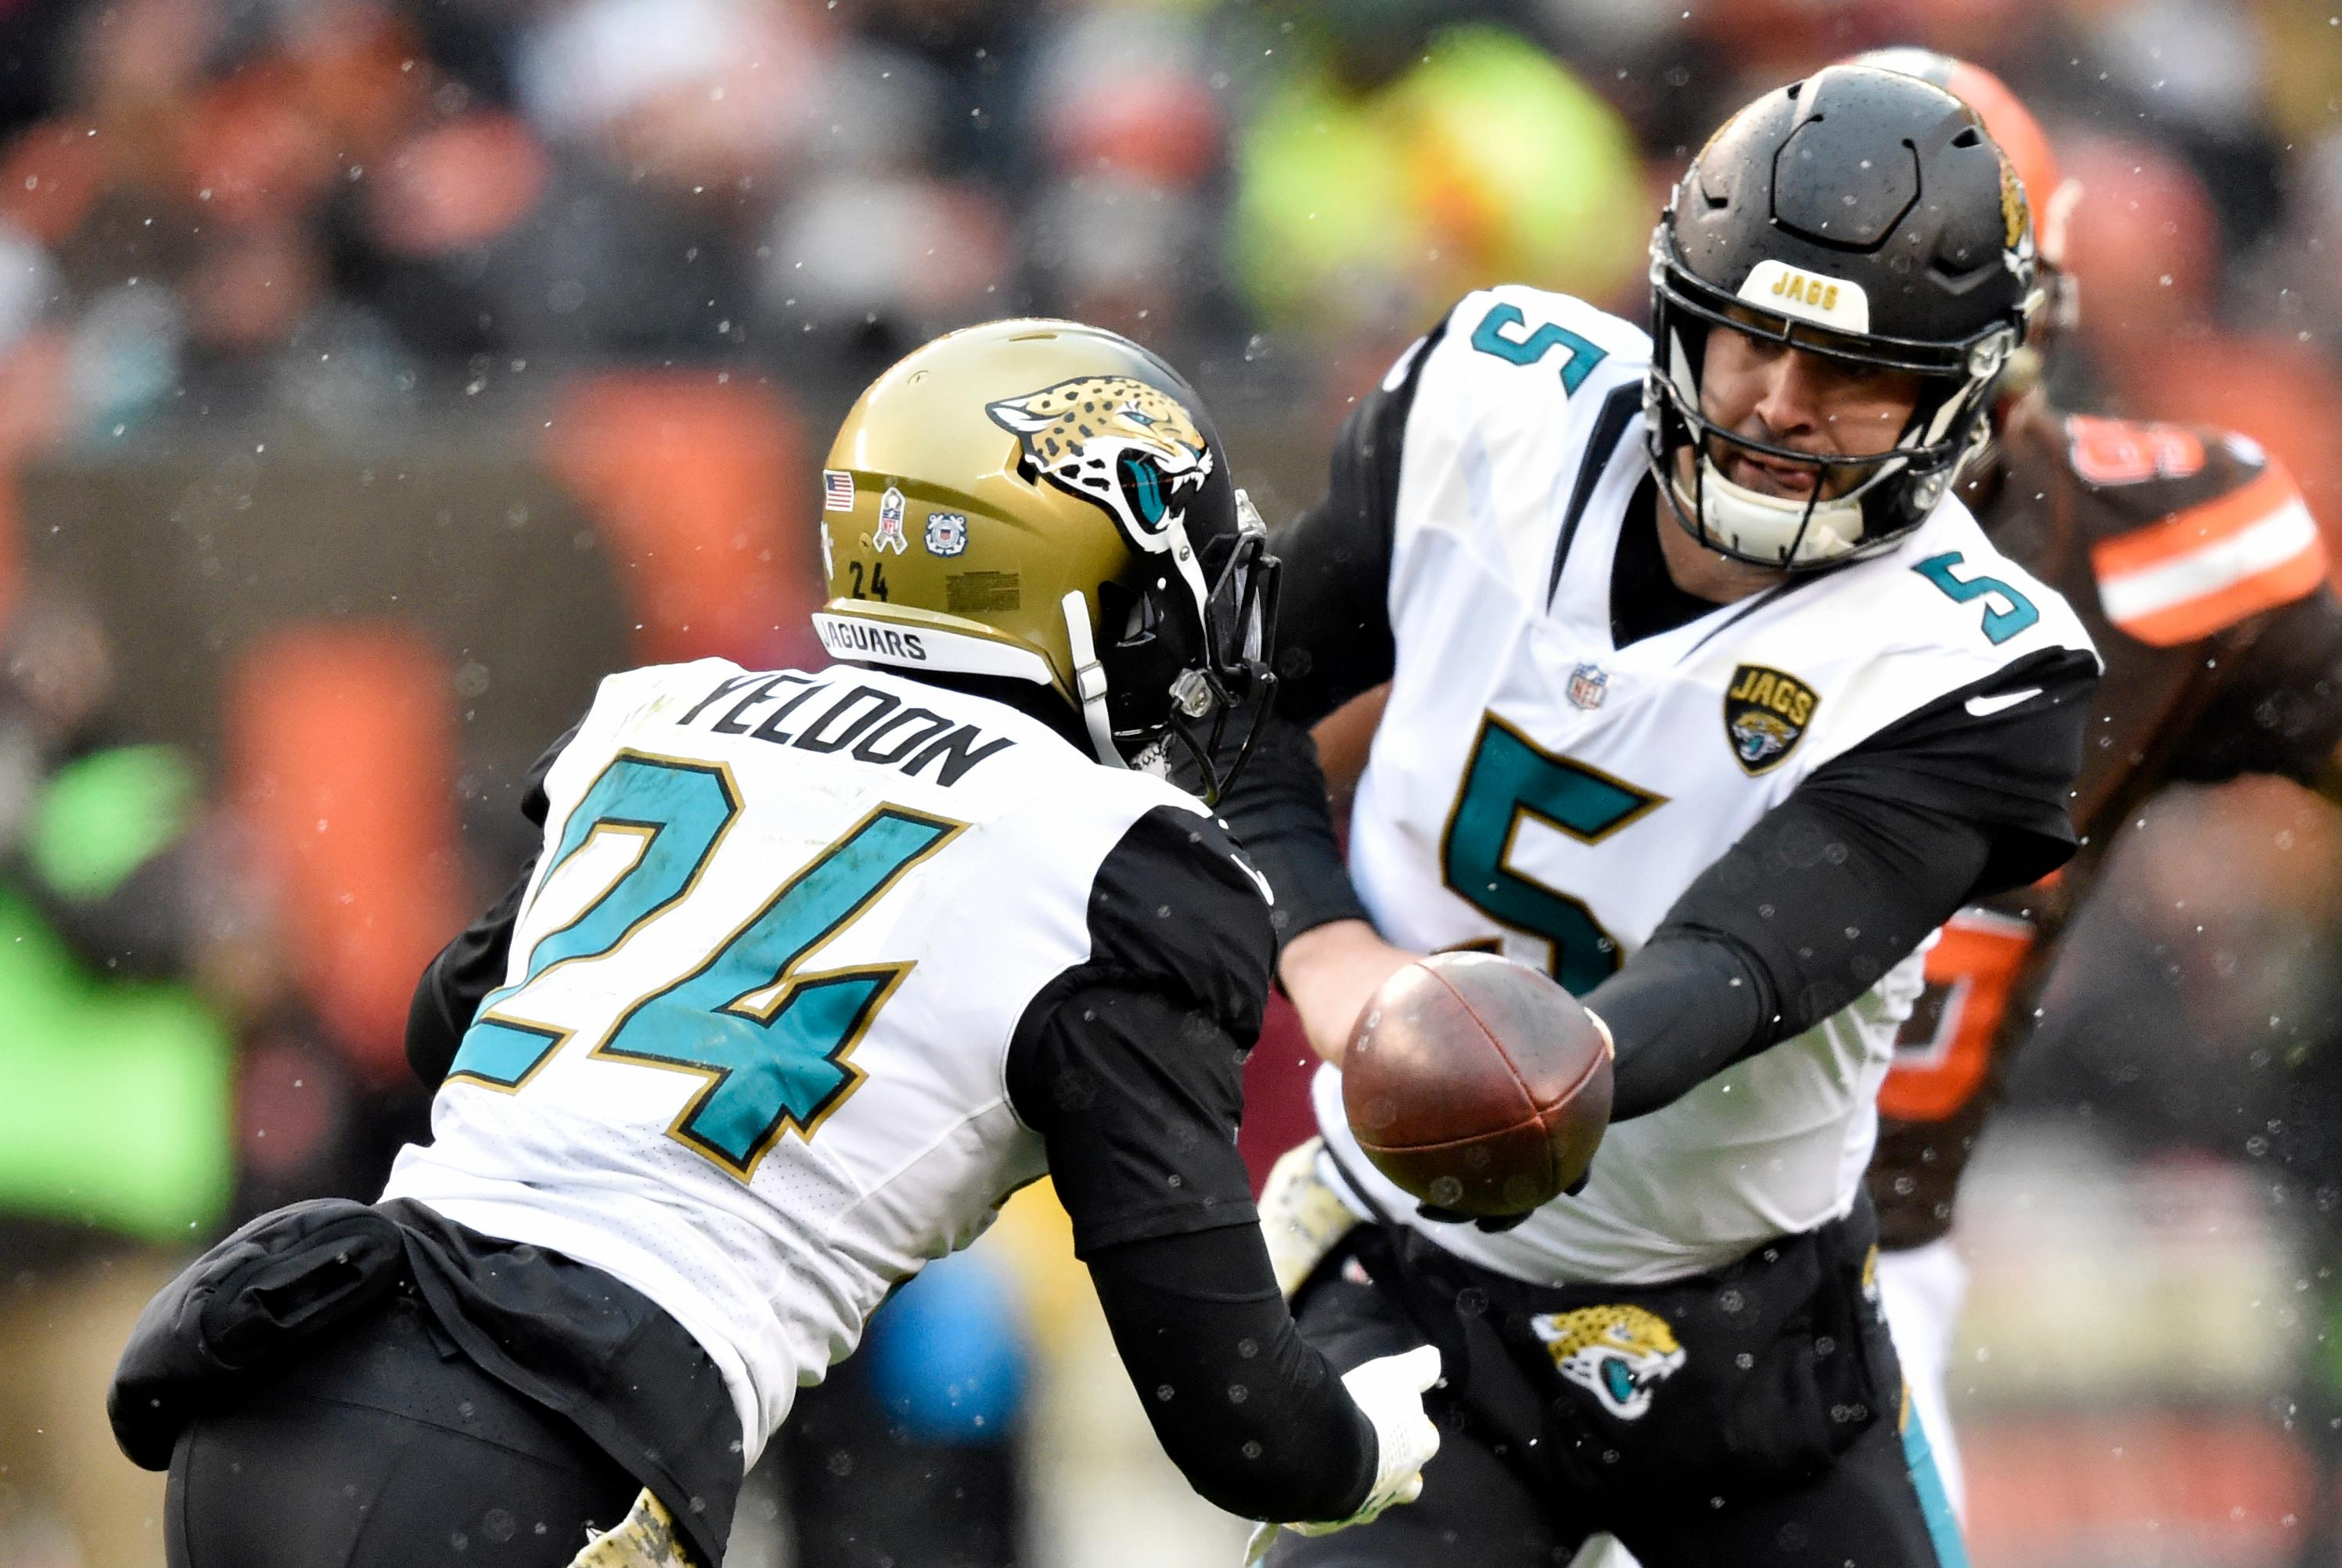 Jacksonville Jaguars quarterback Blake Bortles (5) hands the ball off to running back T.J. Yeldon (24) in the first half of an NFL football game against the Cleveland Browns, Sunday, Nov. 19, 2017, in Cleveland. (AP Photo/David Richard)